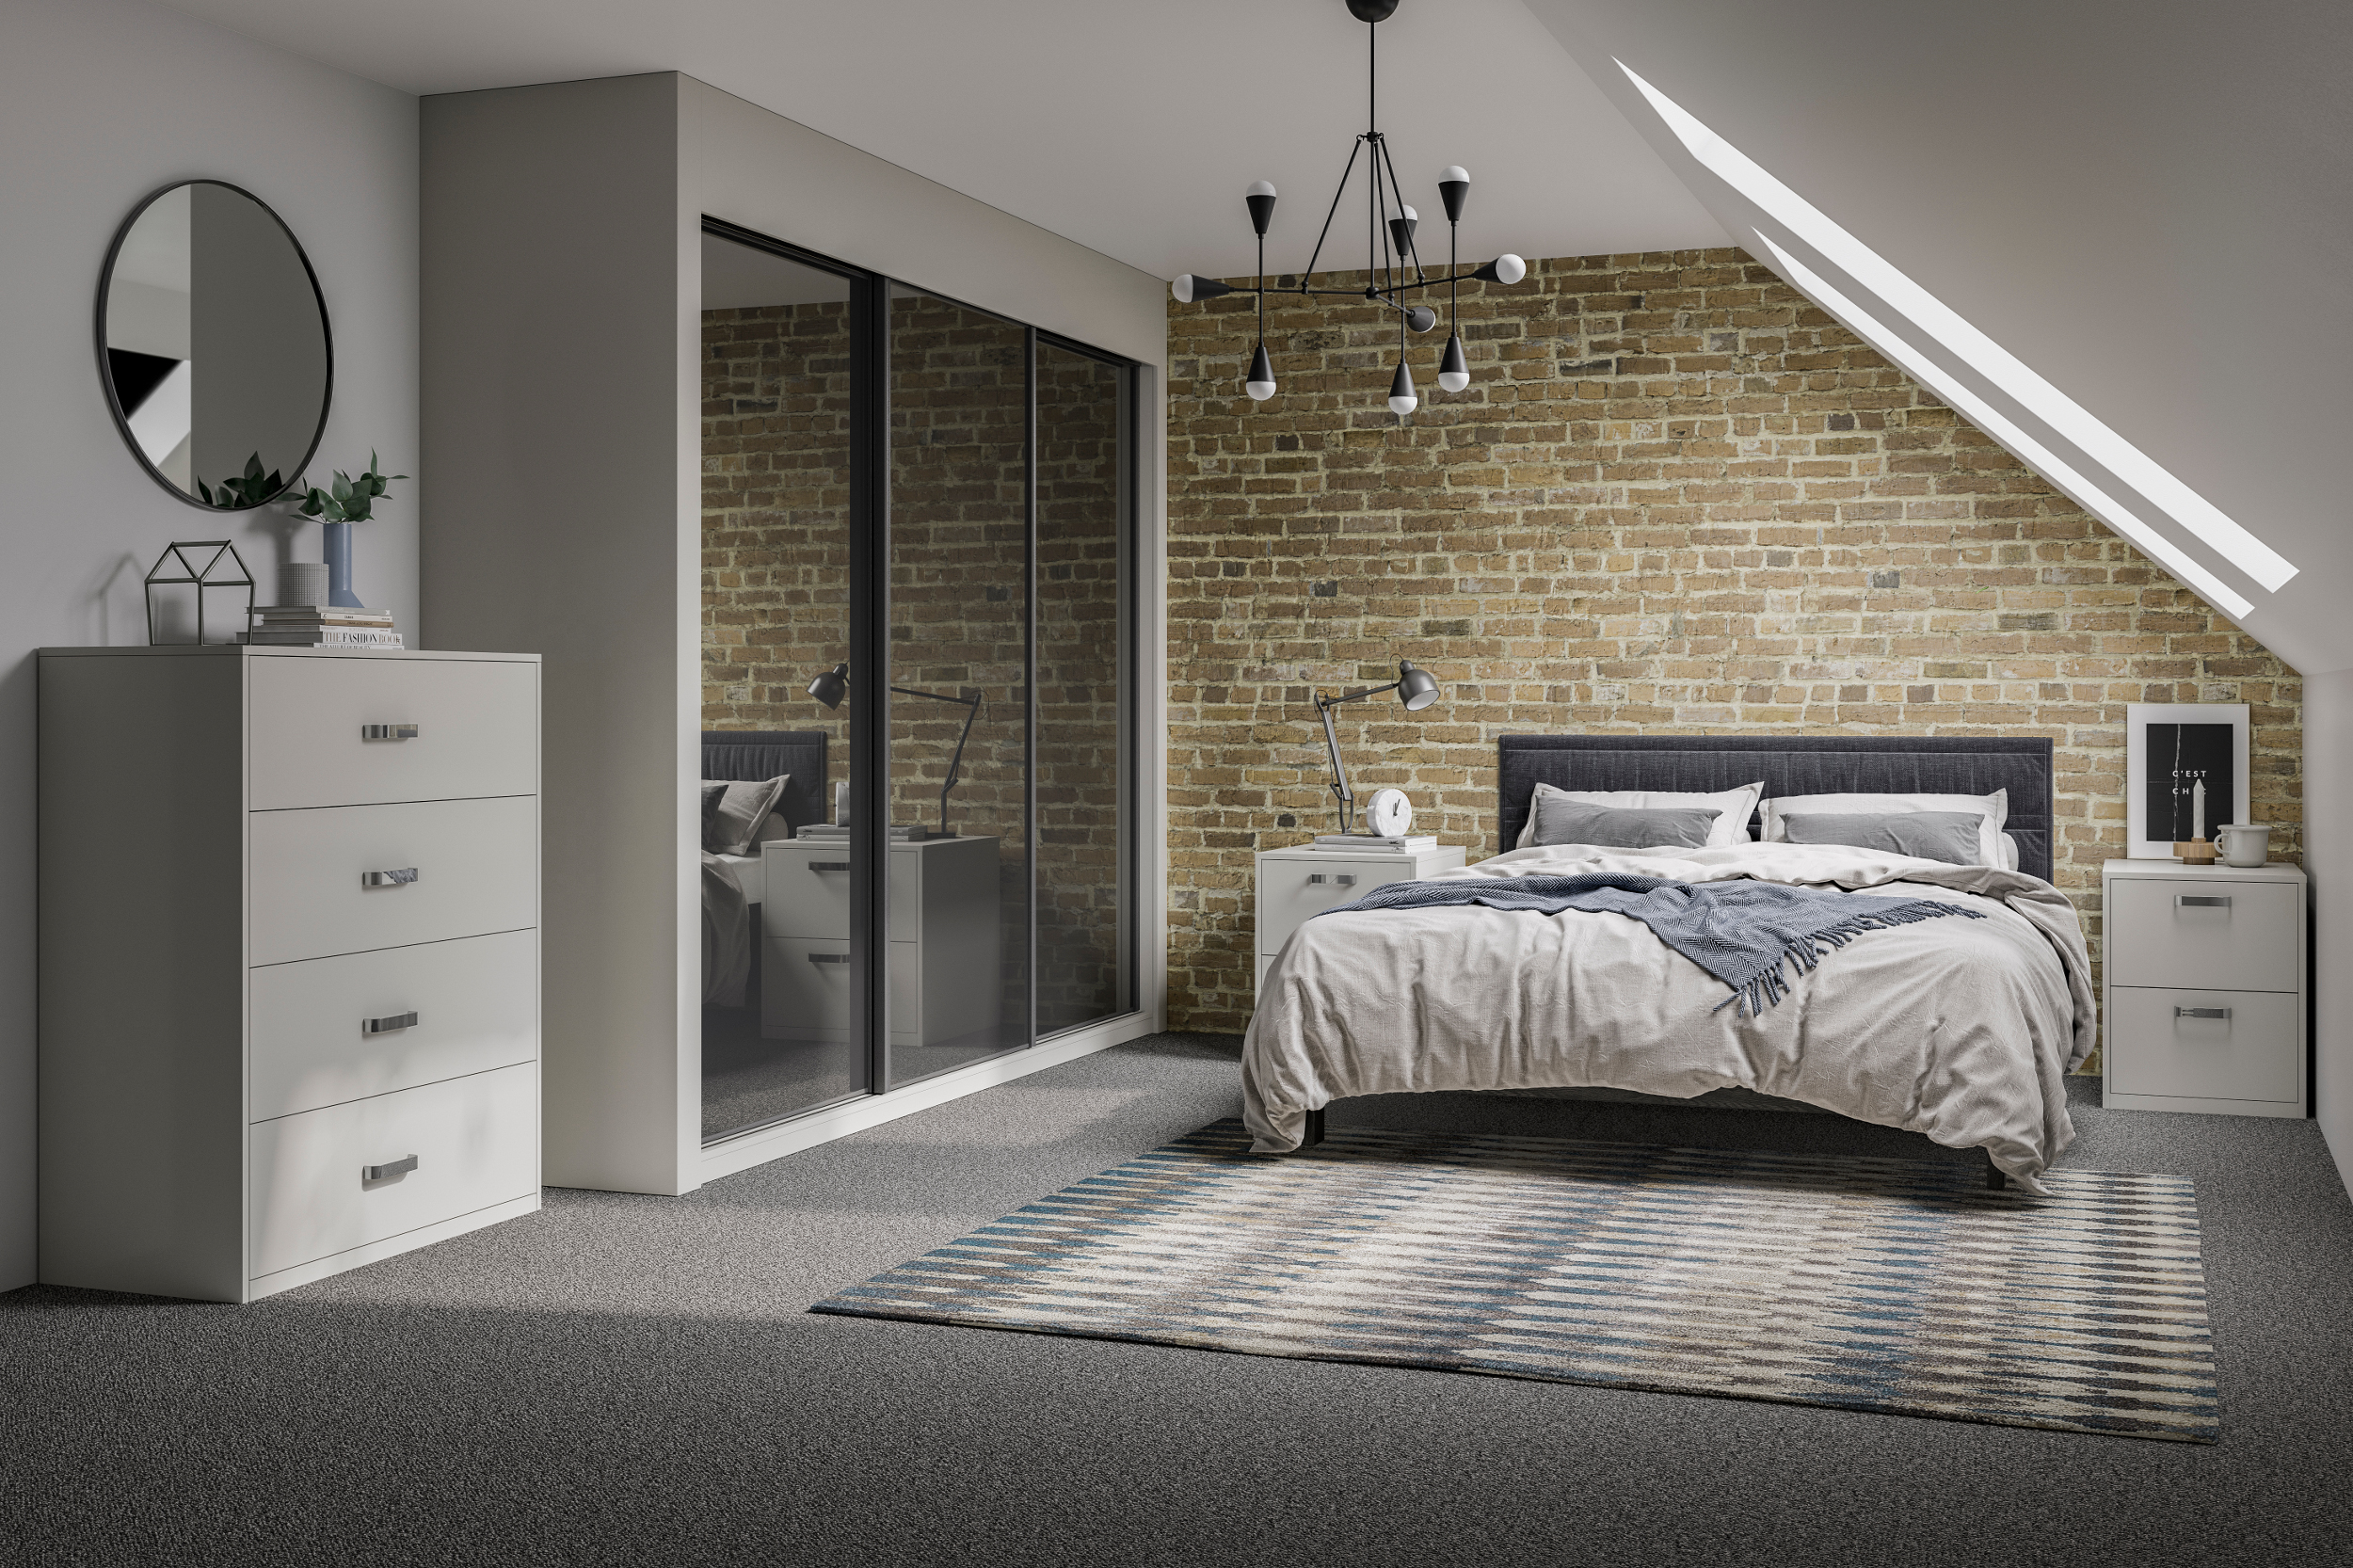 Glide wardrobes in the smoked mirror black option, shown with a bed and a chest of drawers in a bedroom setting